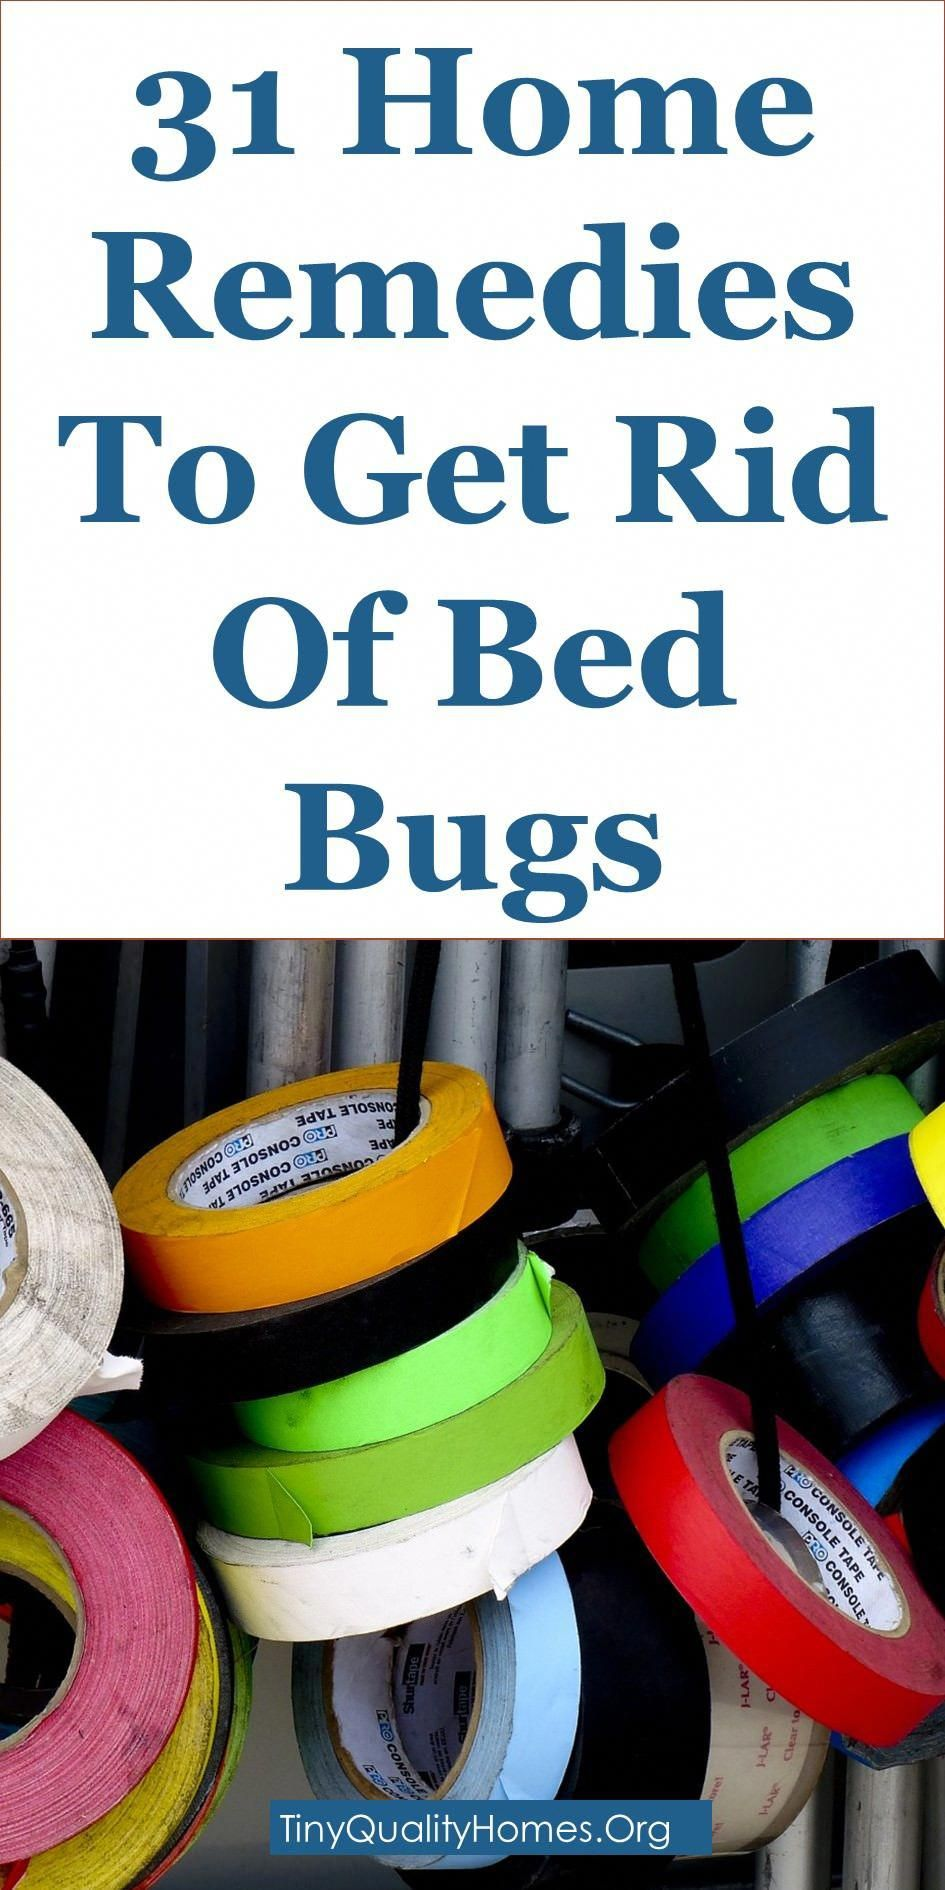 Bed bugs are small, wingless, creepy, nocturnal insects